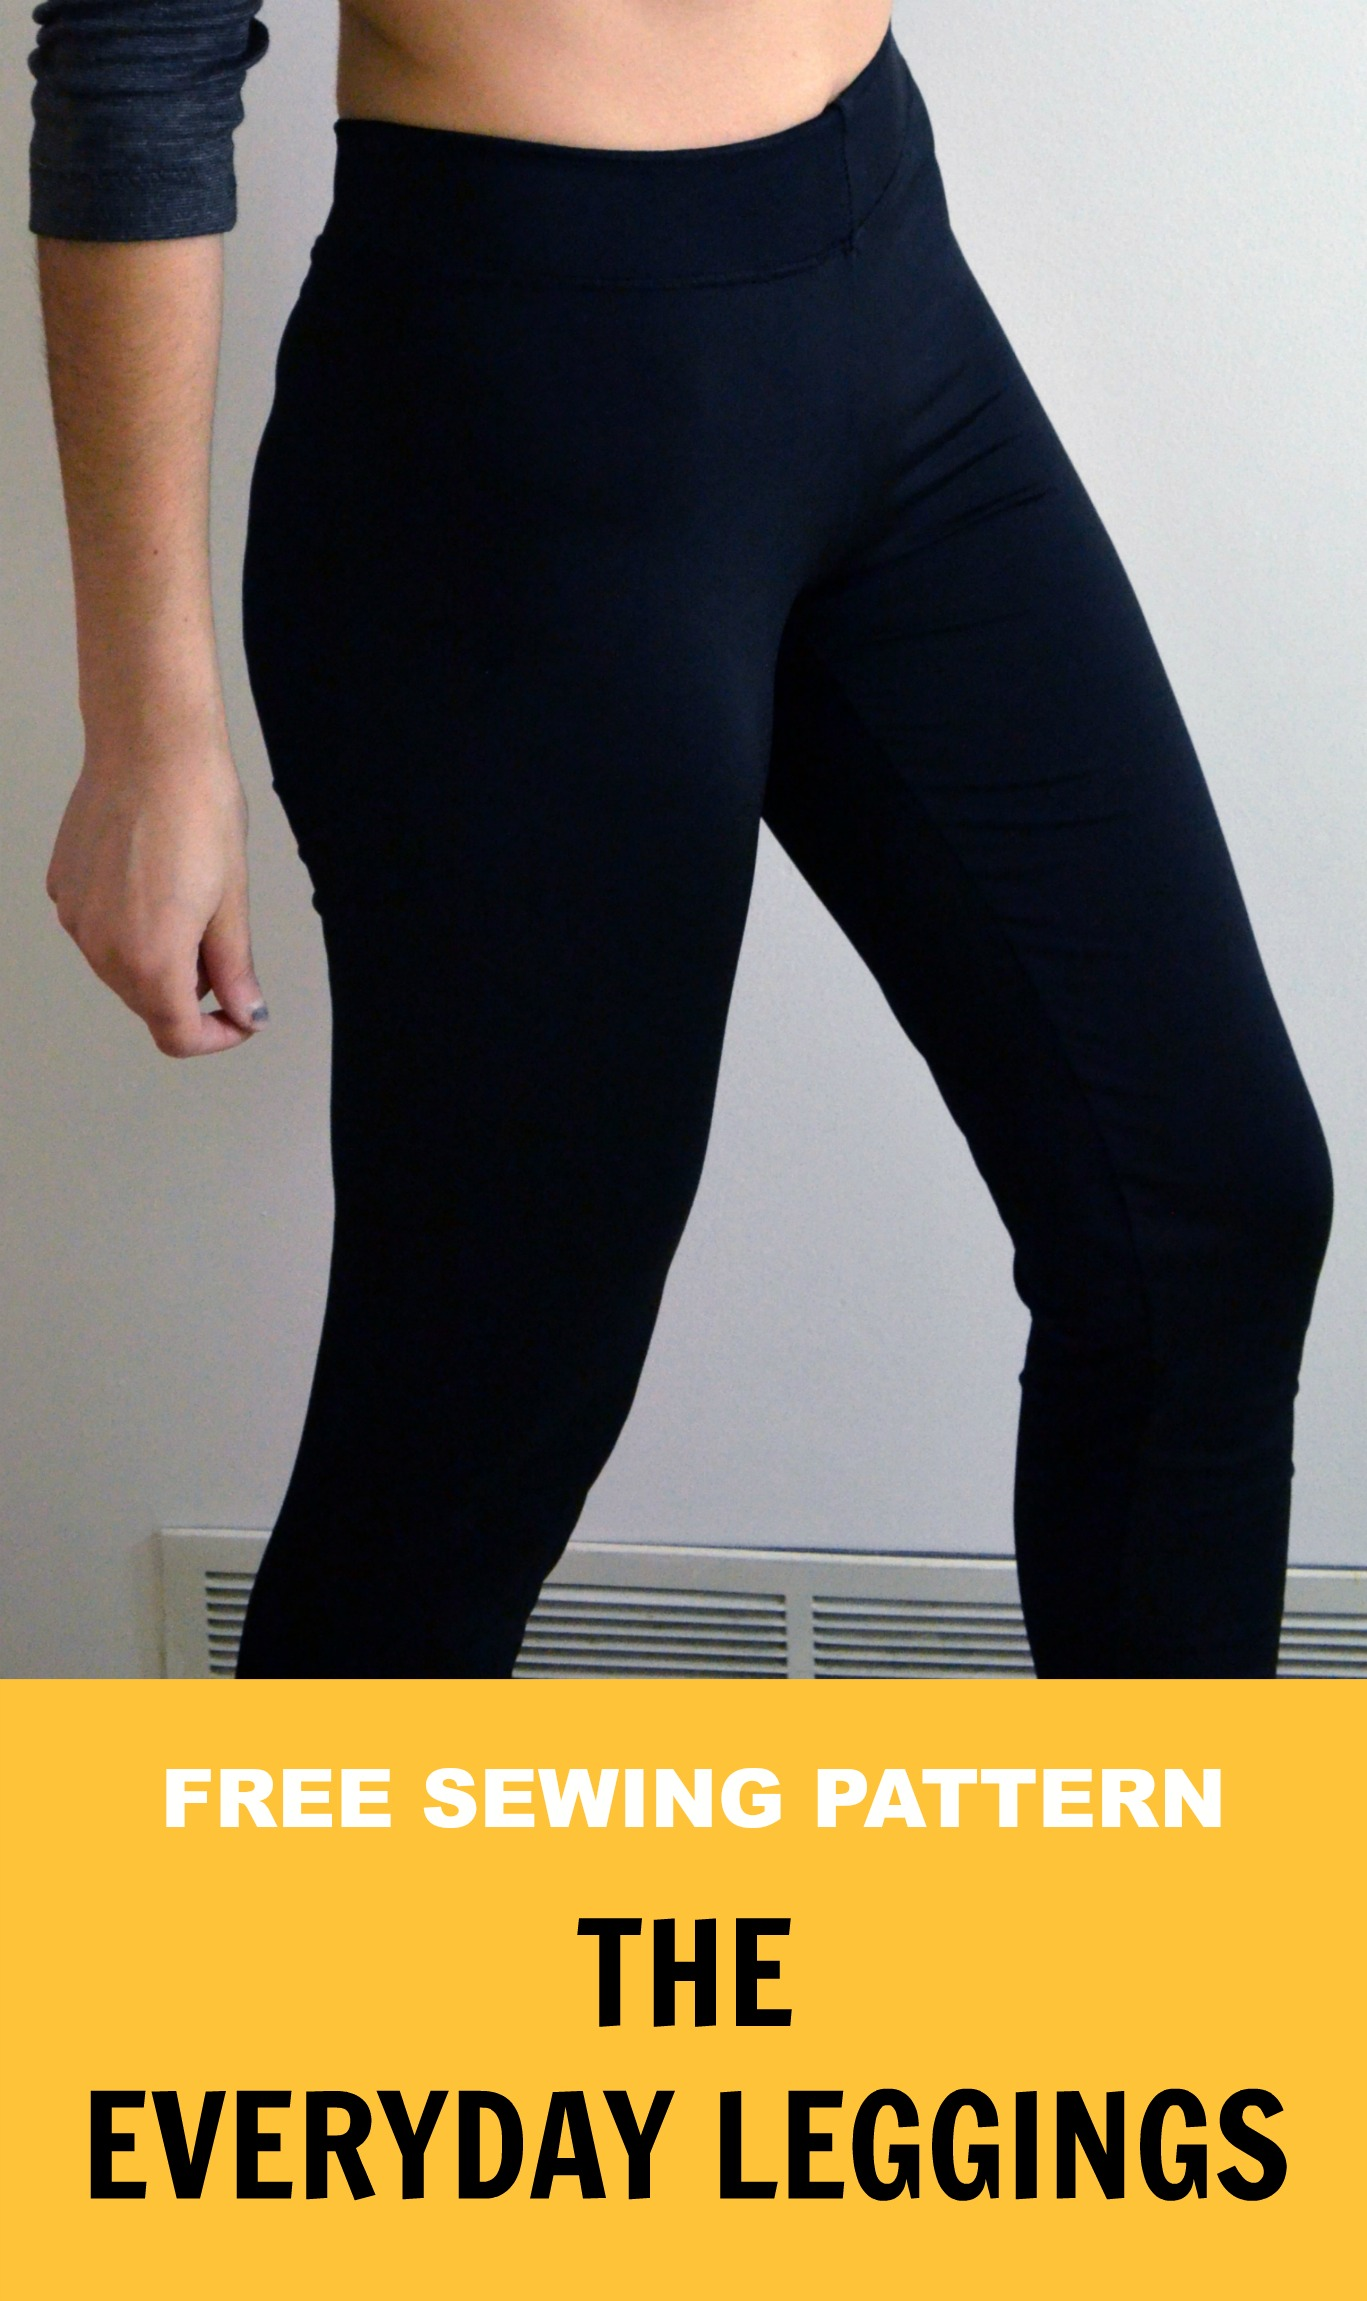 Free sewing pattern easy everyday leggings on the cutting floor free sewing pattern easy everyday leggings jeuxipadfo Image collections